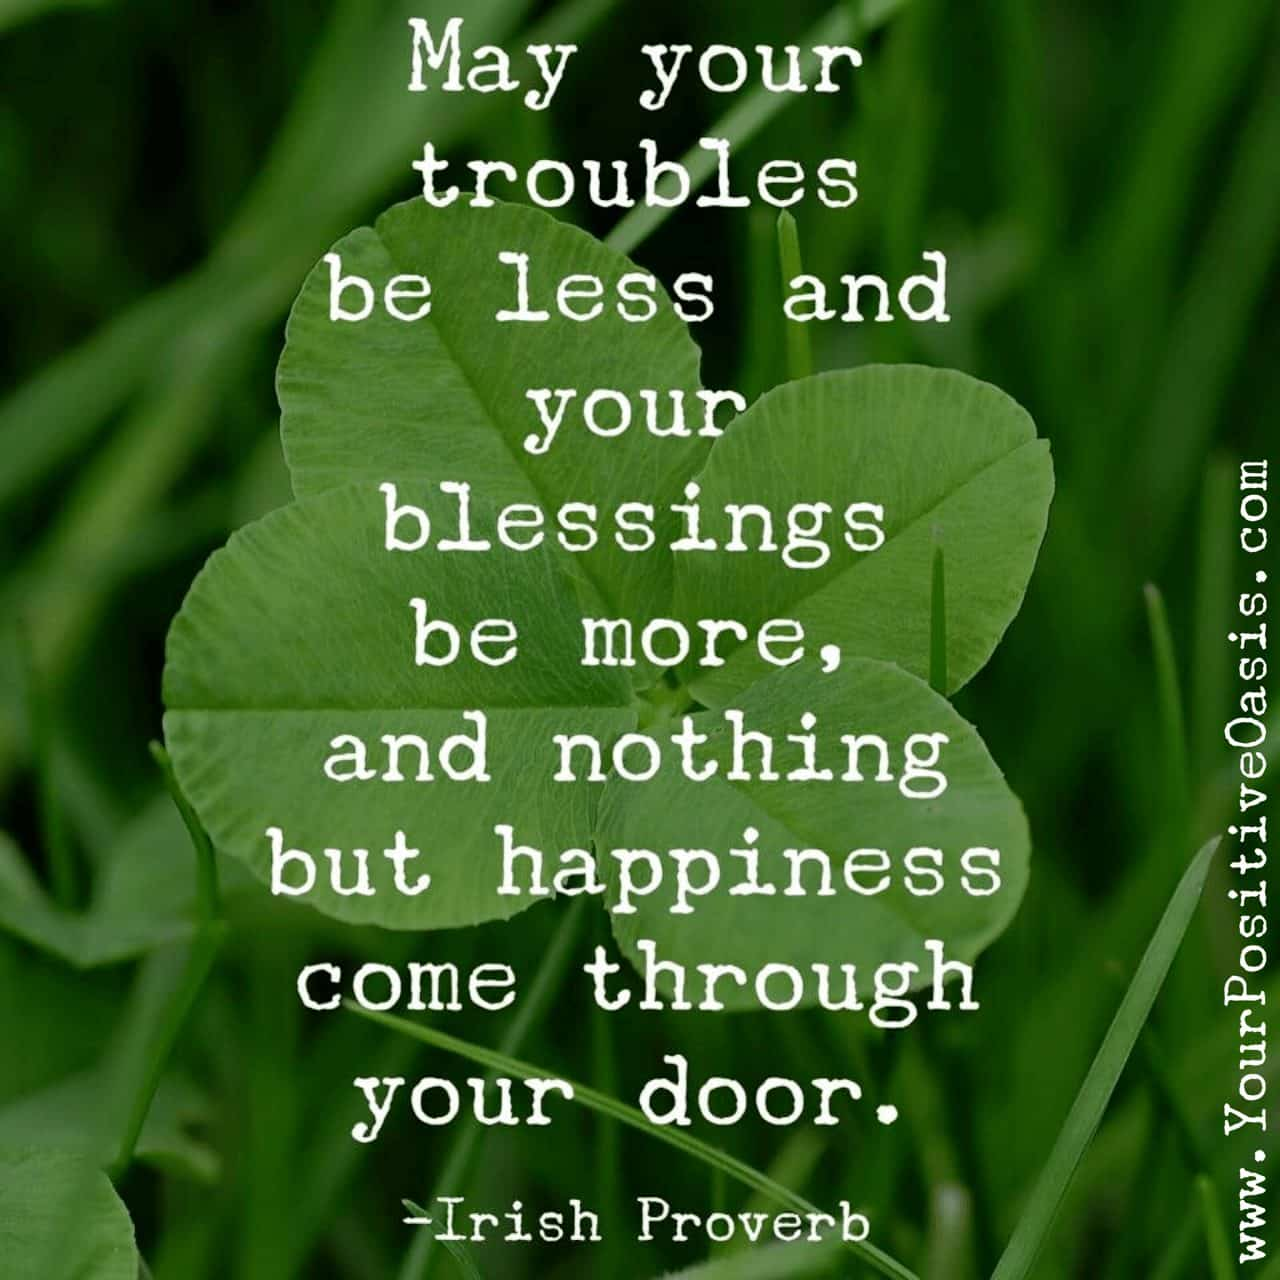 17 Magical Irish Blessings For Saint Patrick's Day